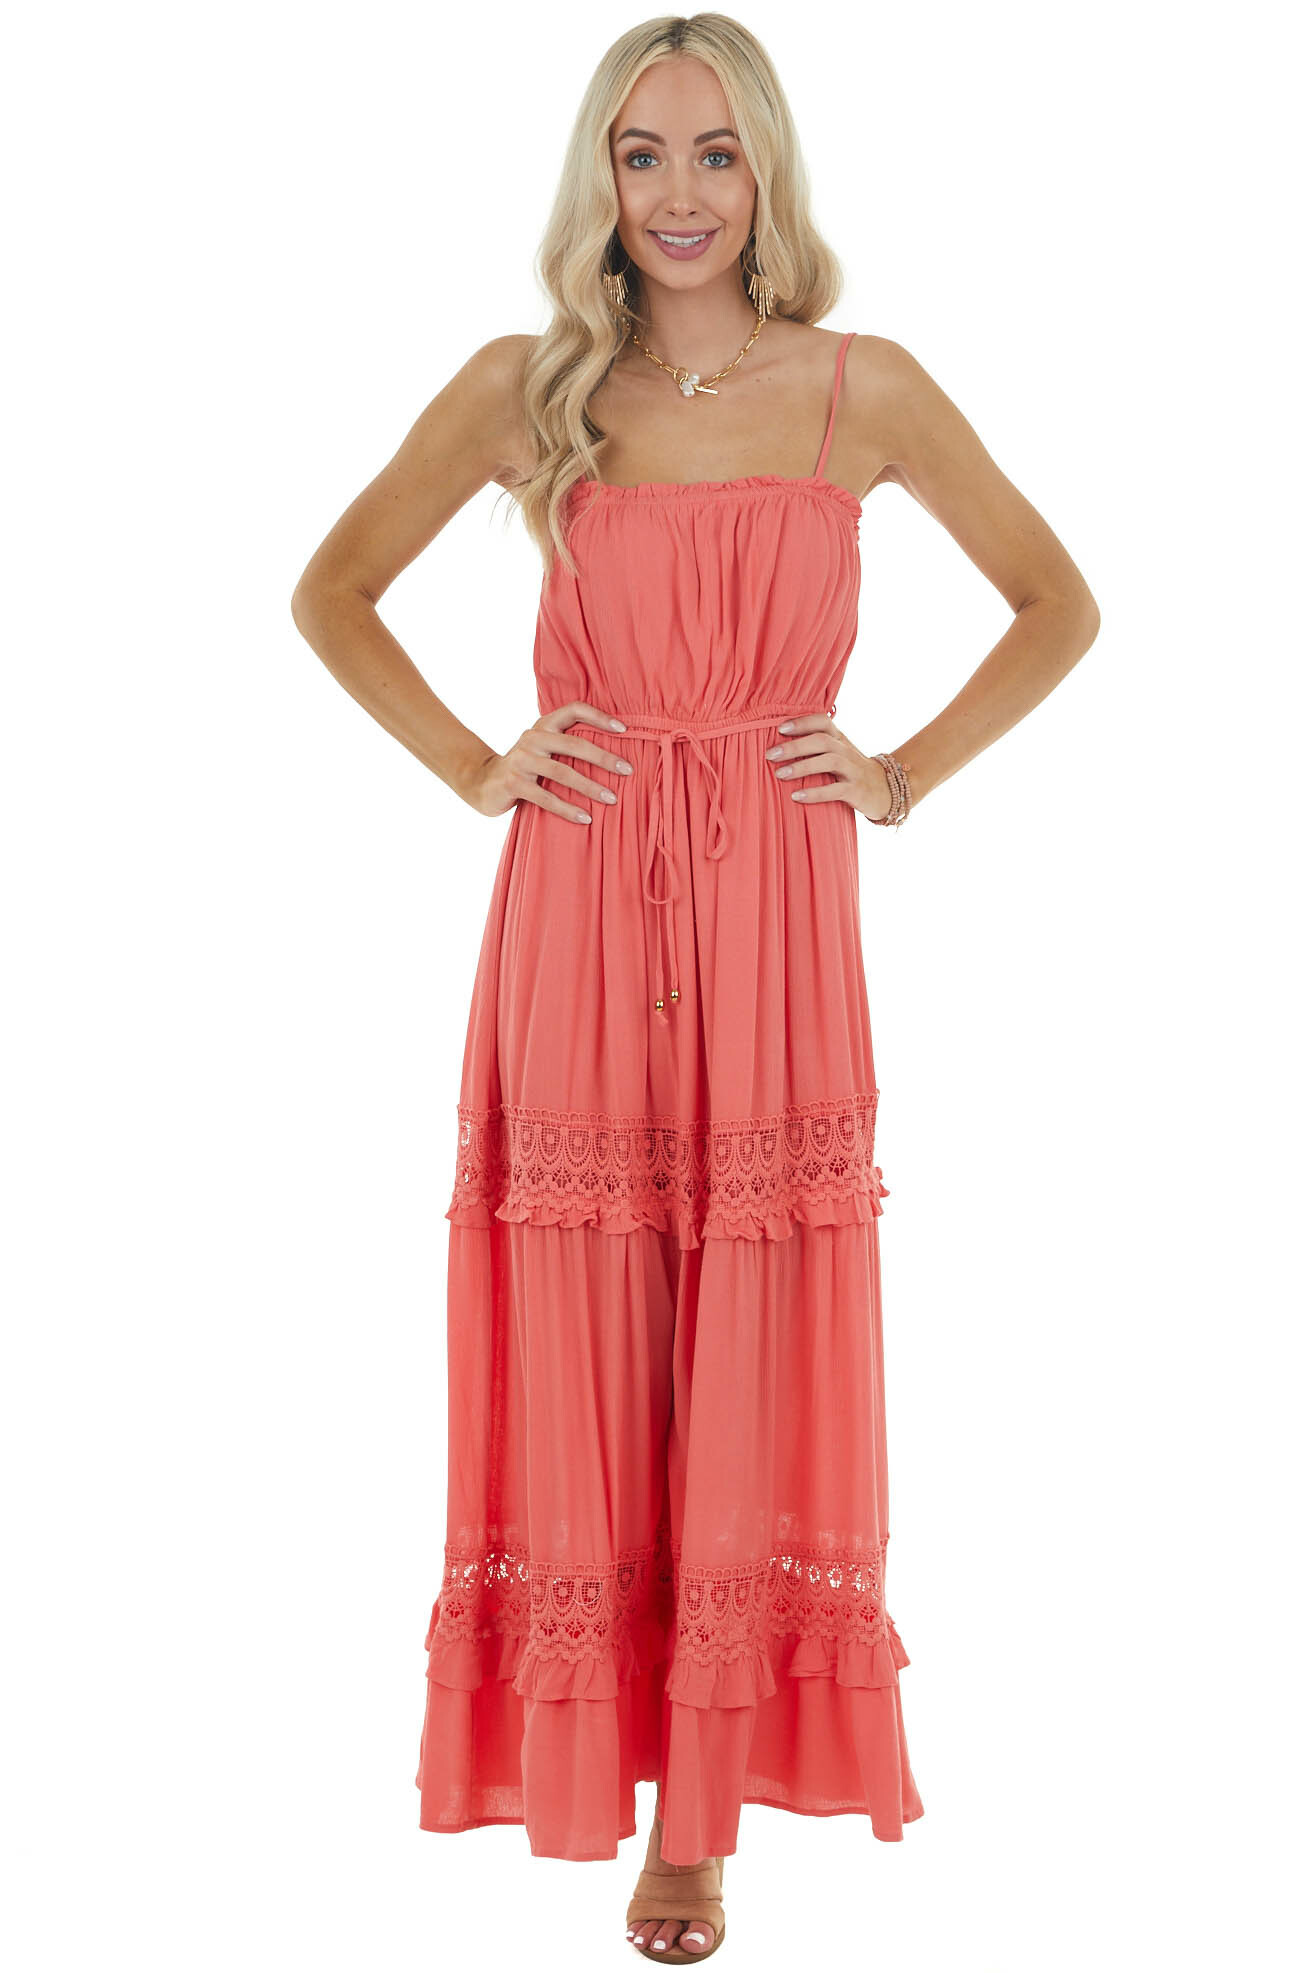 Bright Coral Sleeveless Maxi Dress with Crochet Lace Detail